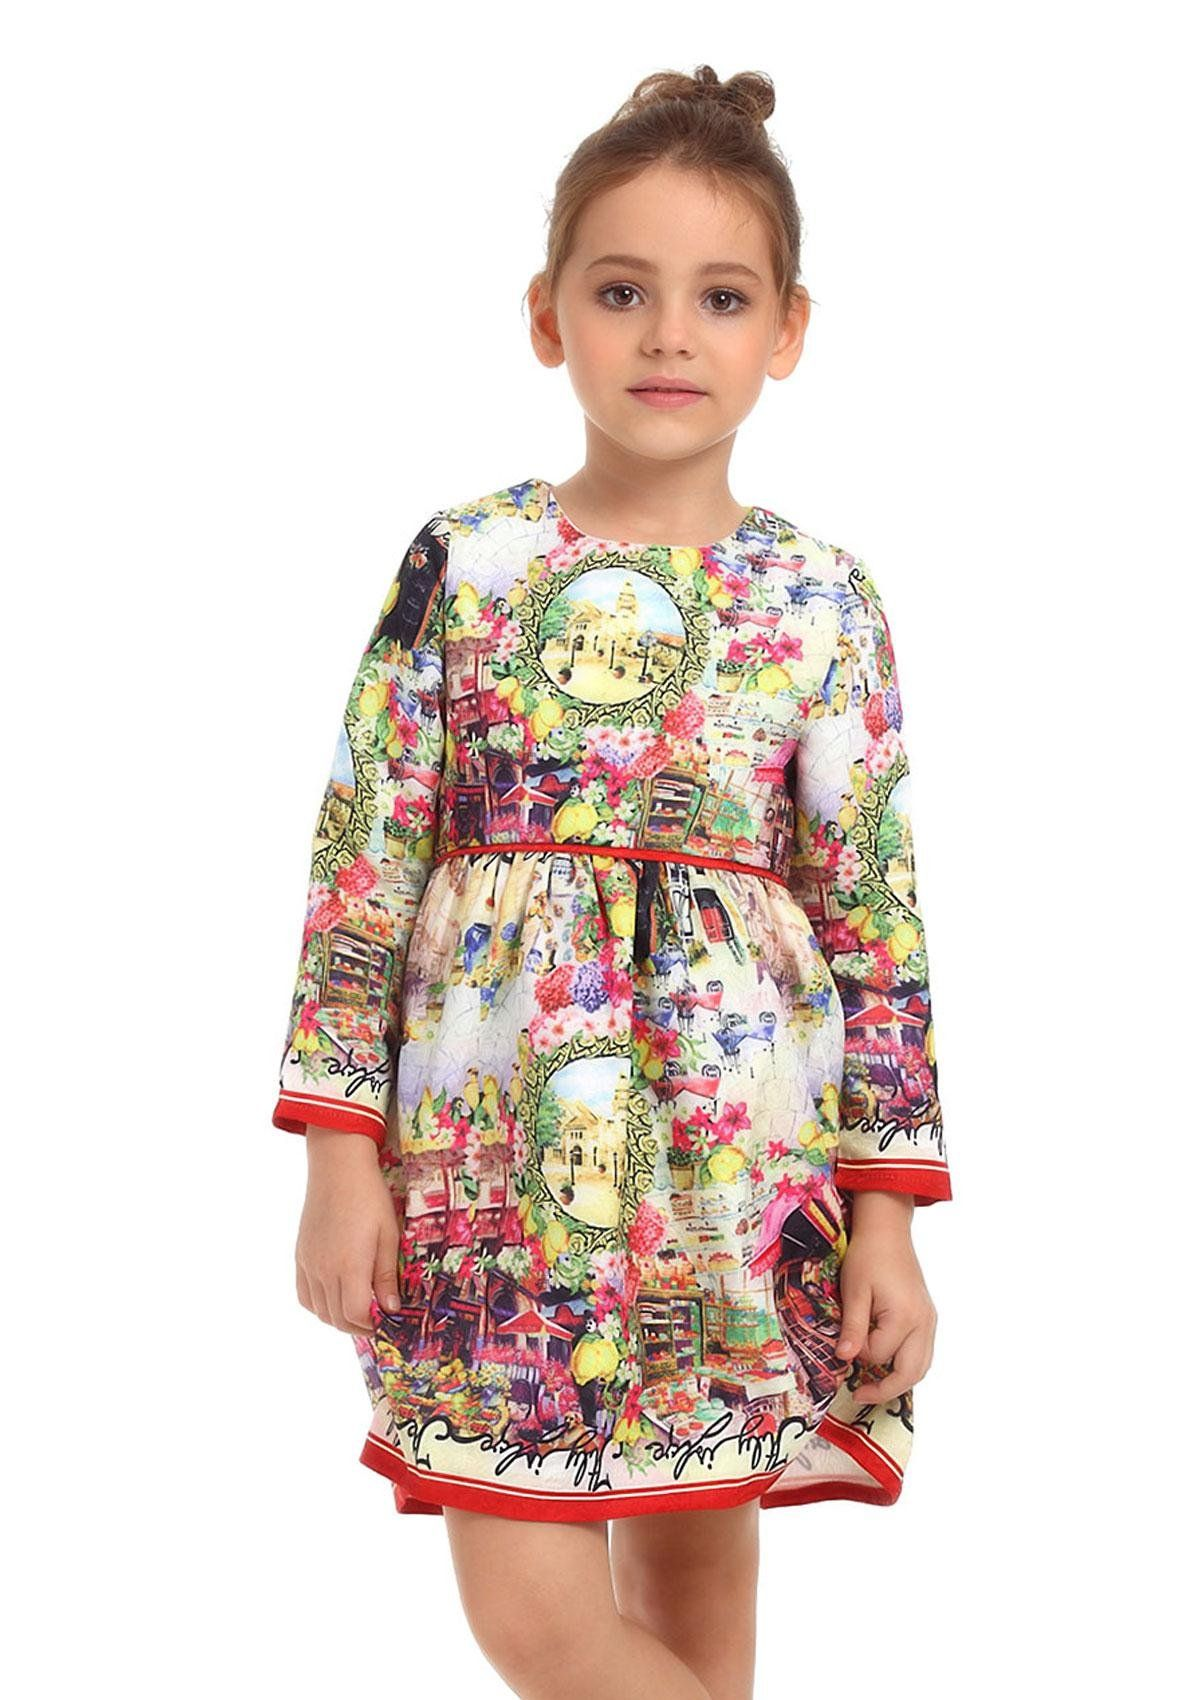 Toddler Girls Midi Dress With Quaint Firenze Printed For Summer 3 4t Made Of Polyester Easily Dyed And Resistant To Creasing I Girls Dresses Dresses Fashion [ 1700 x 1200 Pixel ]